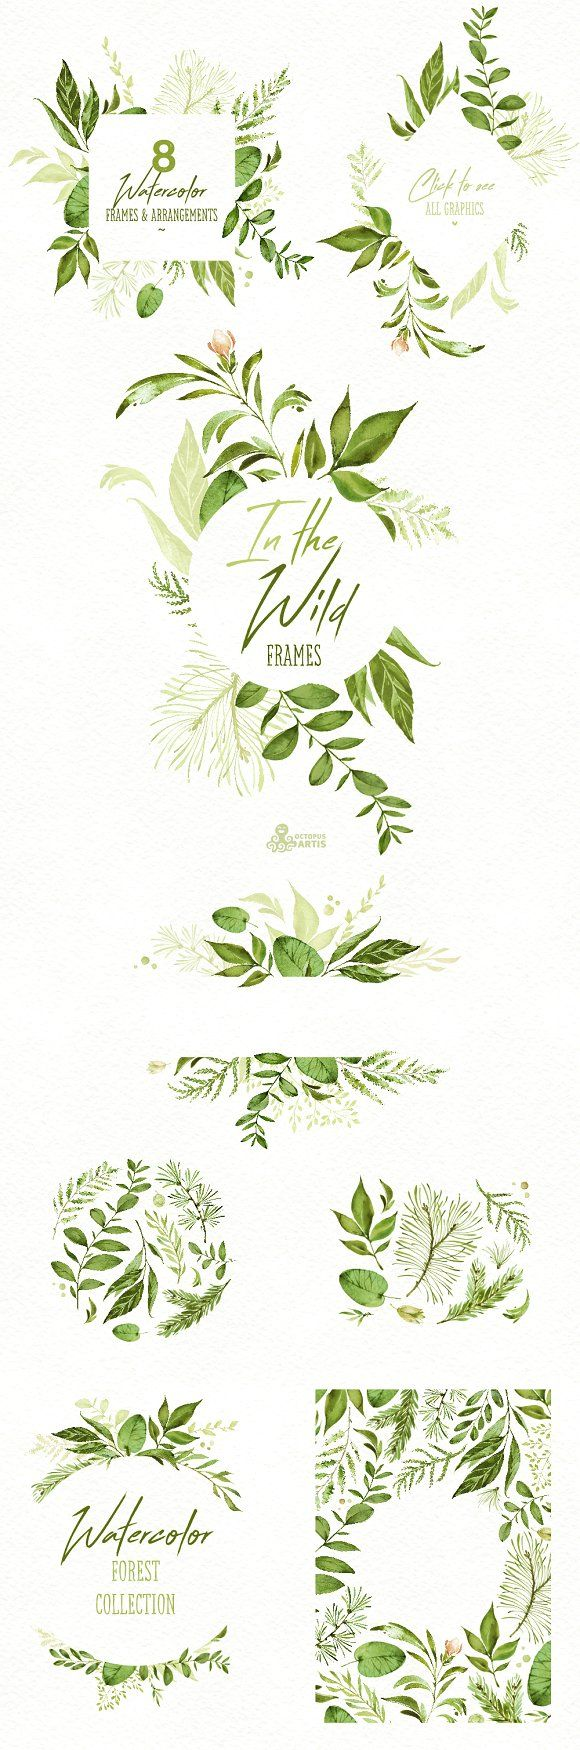 In the Wild. Forest Collection by OctopusArtis on @creativemarket